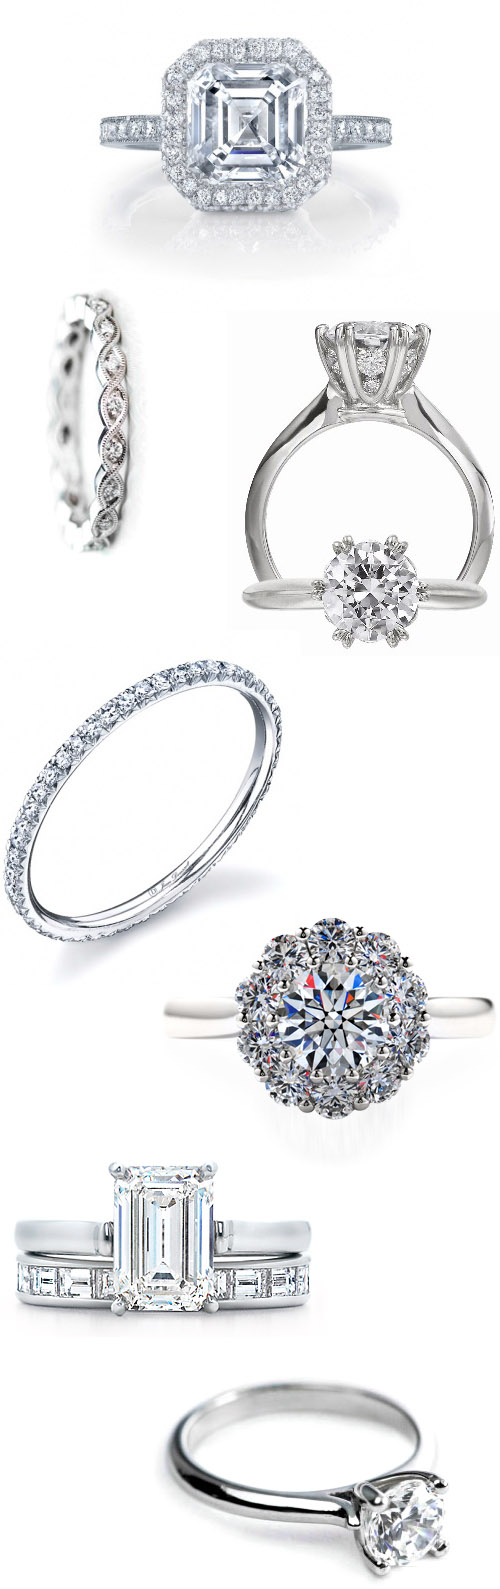 classic, traditional diamond engagement rings